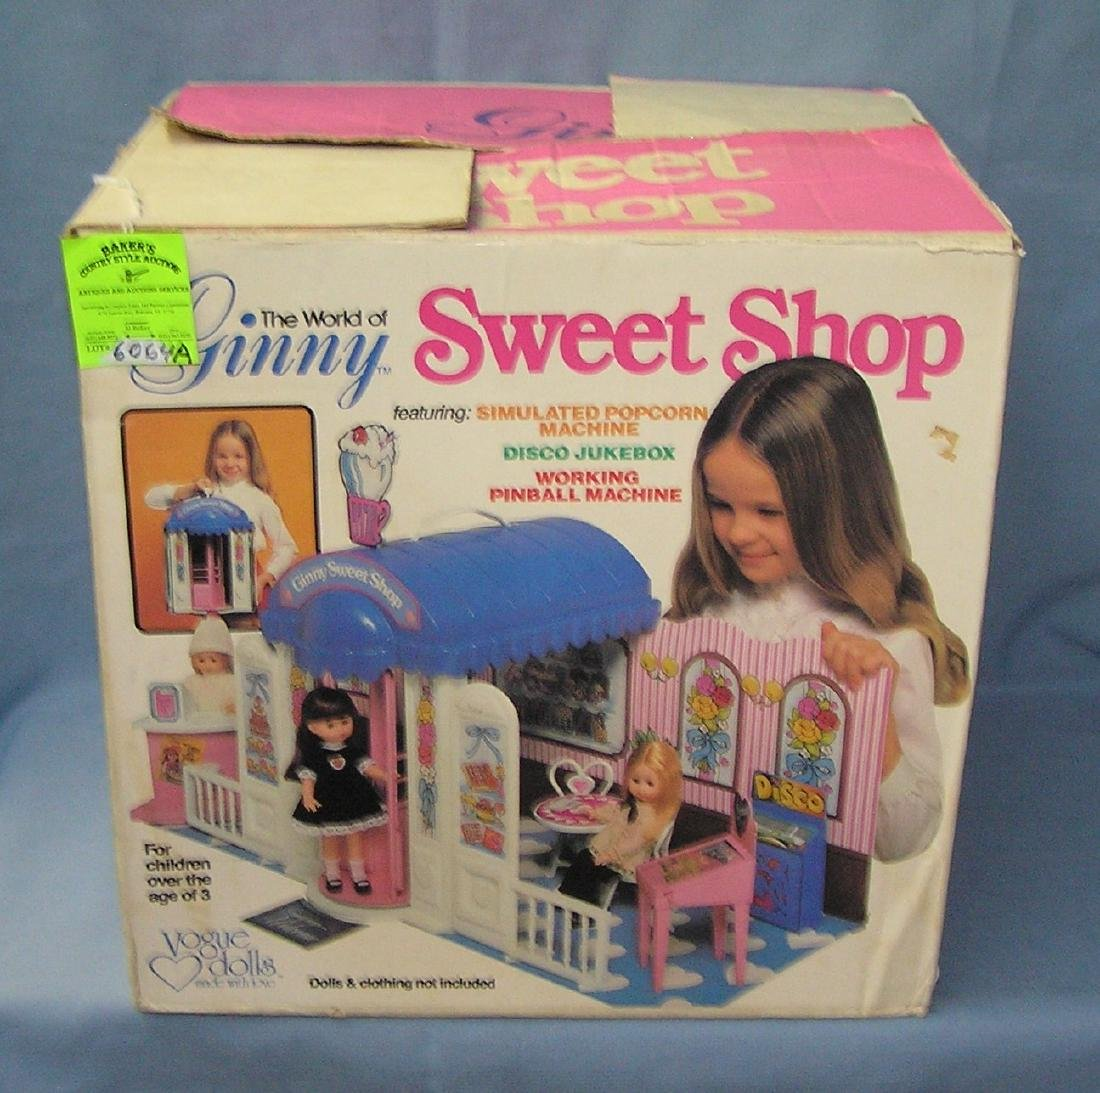 The world of Ginny Sweet Shop play set